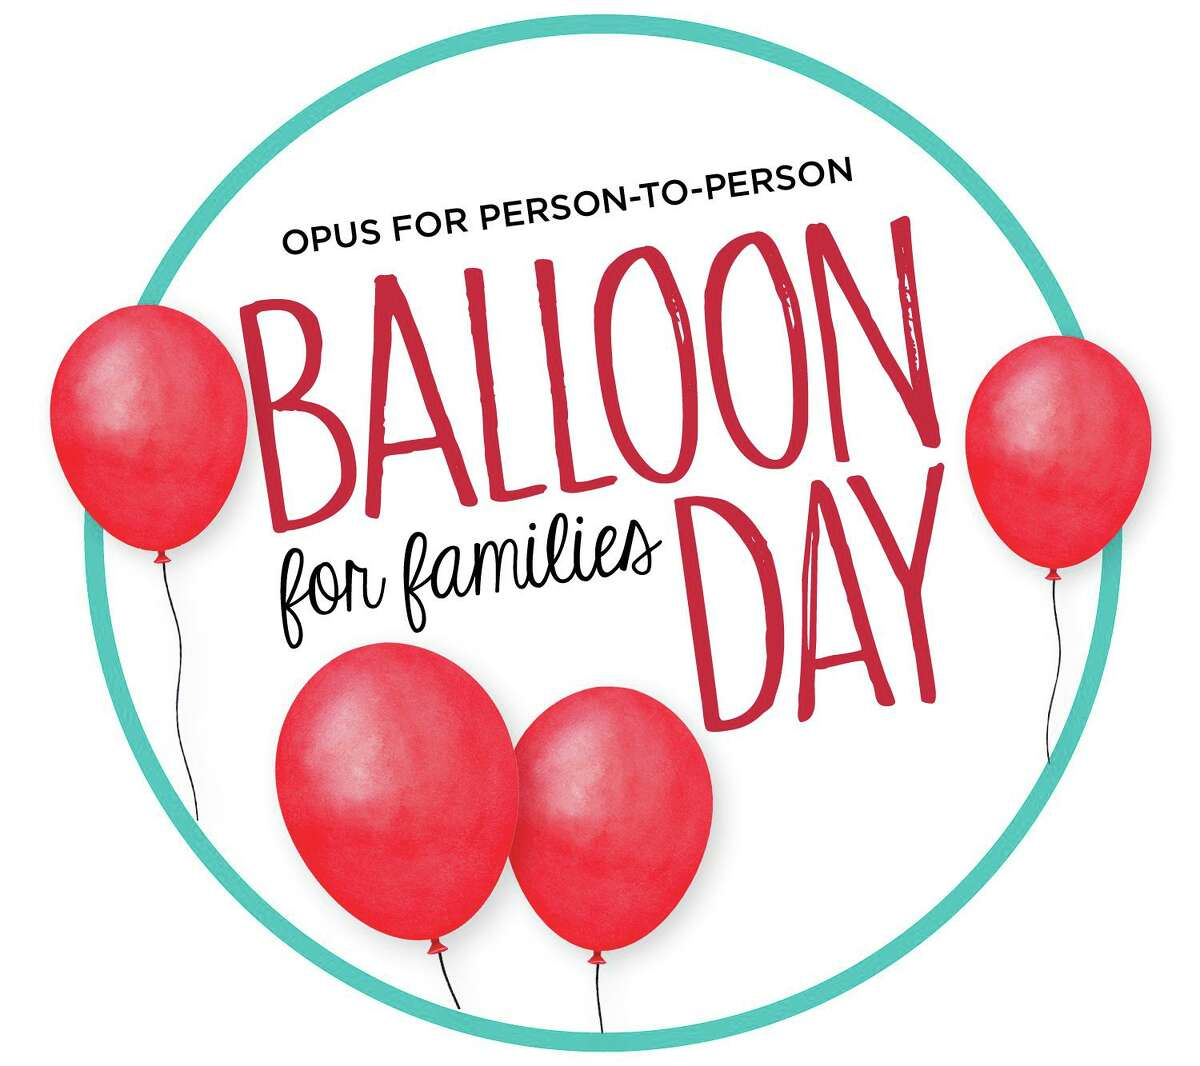 This year, when people donate to Balloons for Families, they will receive a do-it-yourself OPUS Balloon that can be printed and decorated at home.